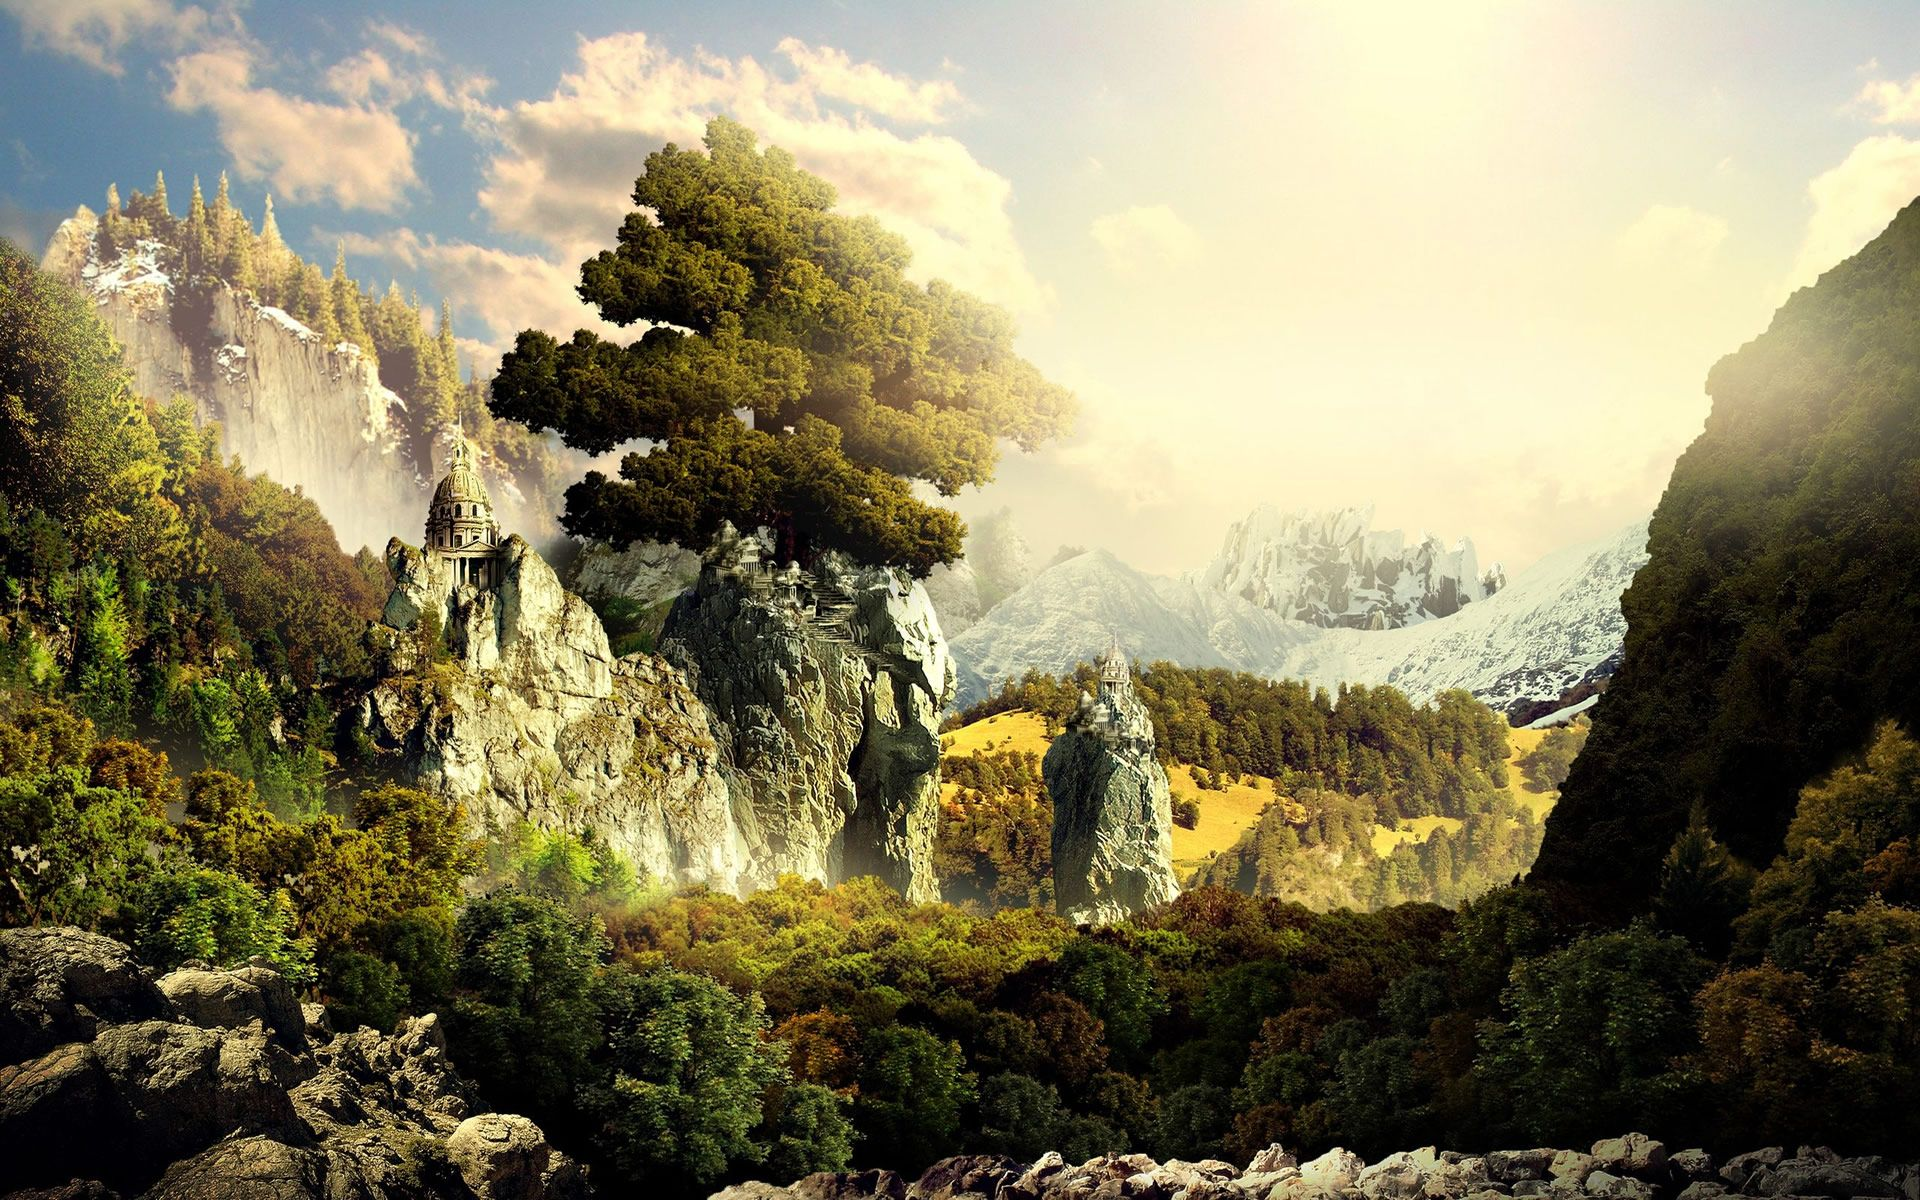 Fantasy Landscape Background Jpg 1920 1200 Landscape Wallpaper Scenery Wallpaper Fantasy Landscape